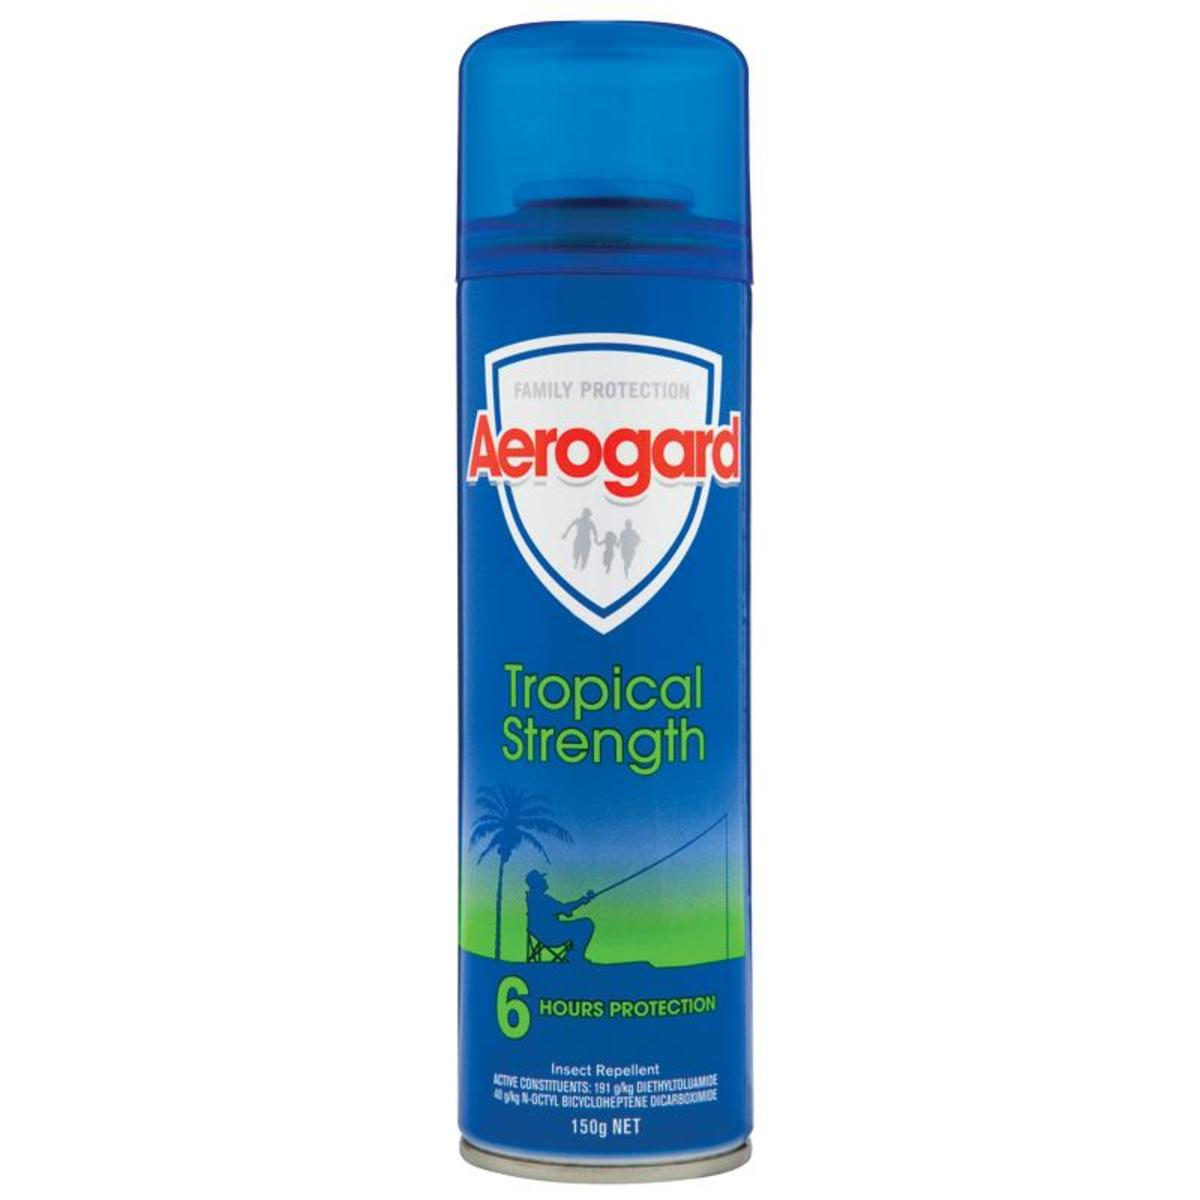 We used Aeroguard Tropical Strength Insect Repellent while in Bali.  It doesn't smell too bad and works well against mosquitoes.